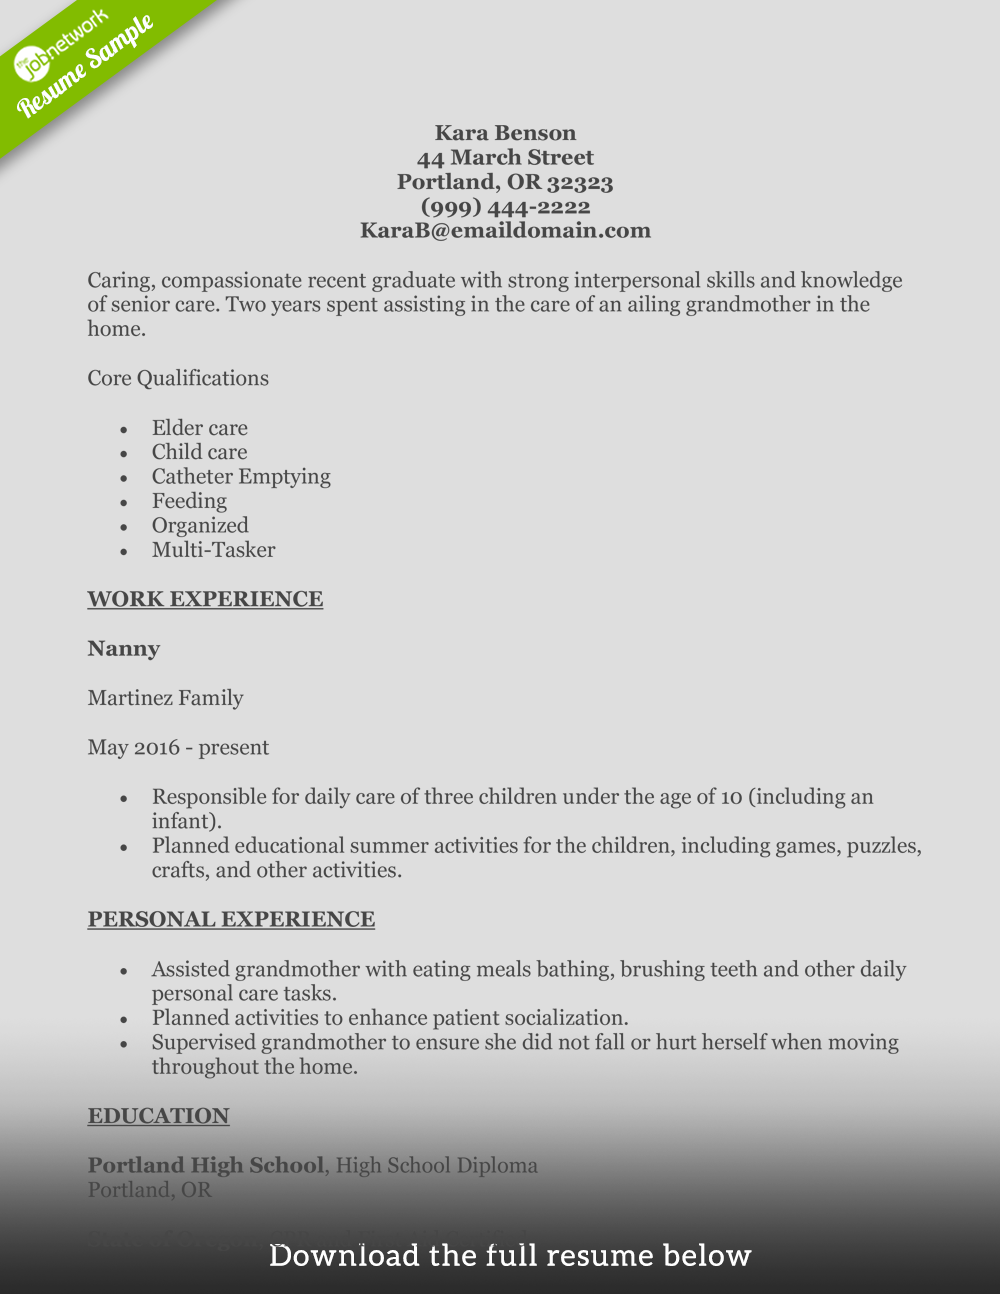 Home Health Aide Resume Entry Level  How To Make An Excellent Resume